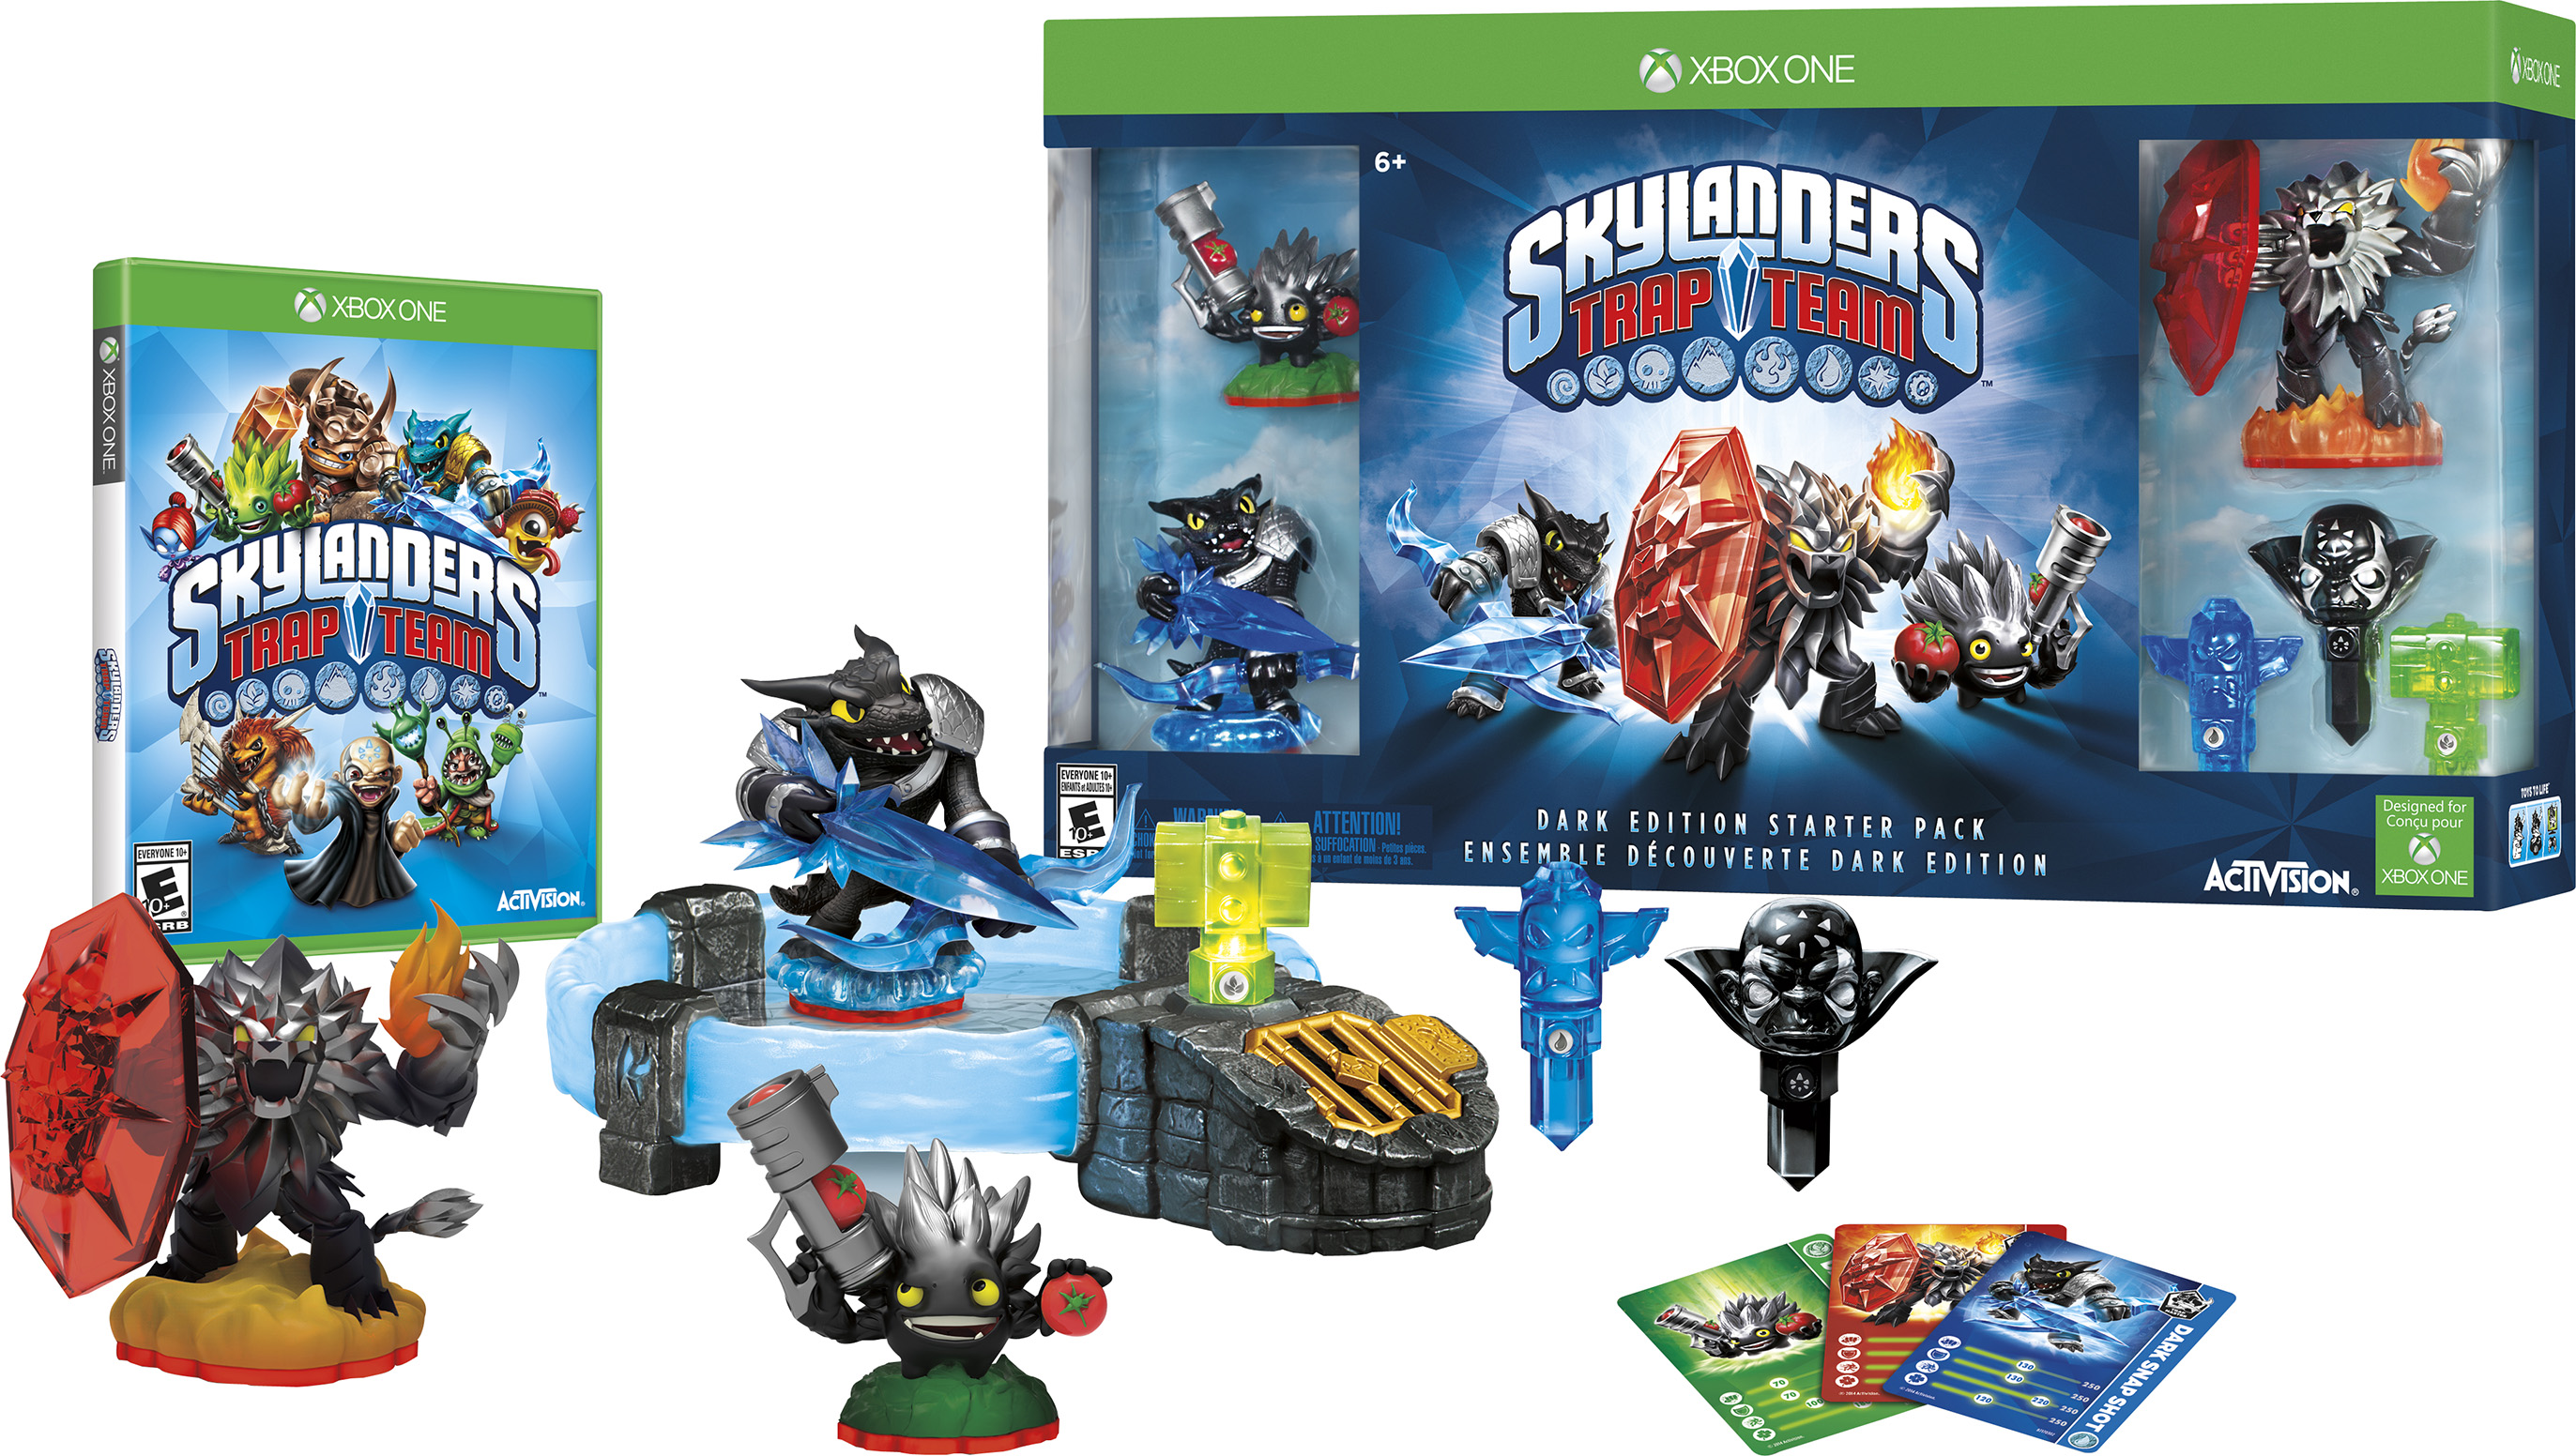 Skylanders Trap Team Dark Edition Starter Pack for Xbox One FKF-01129